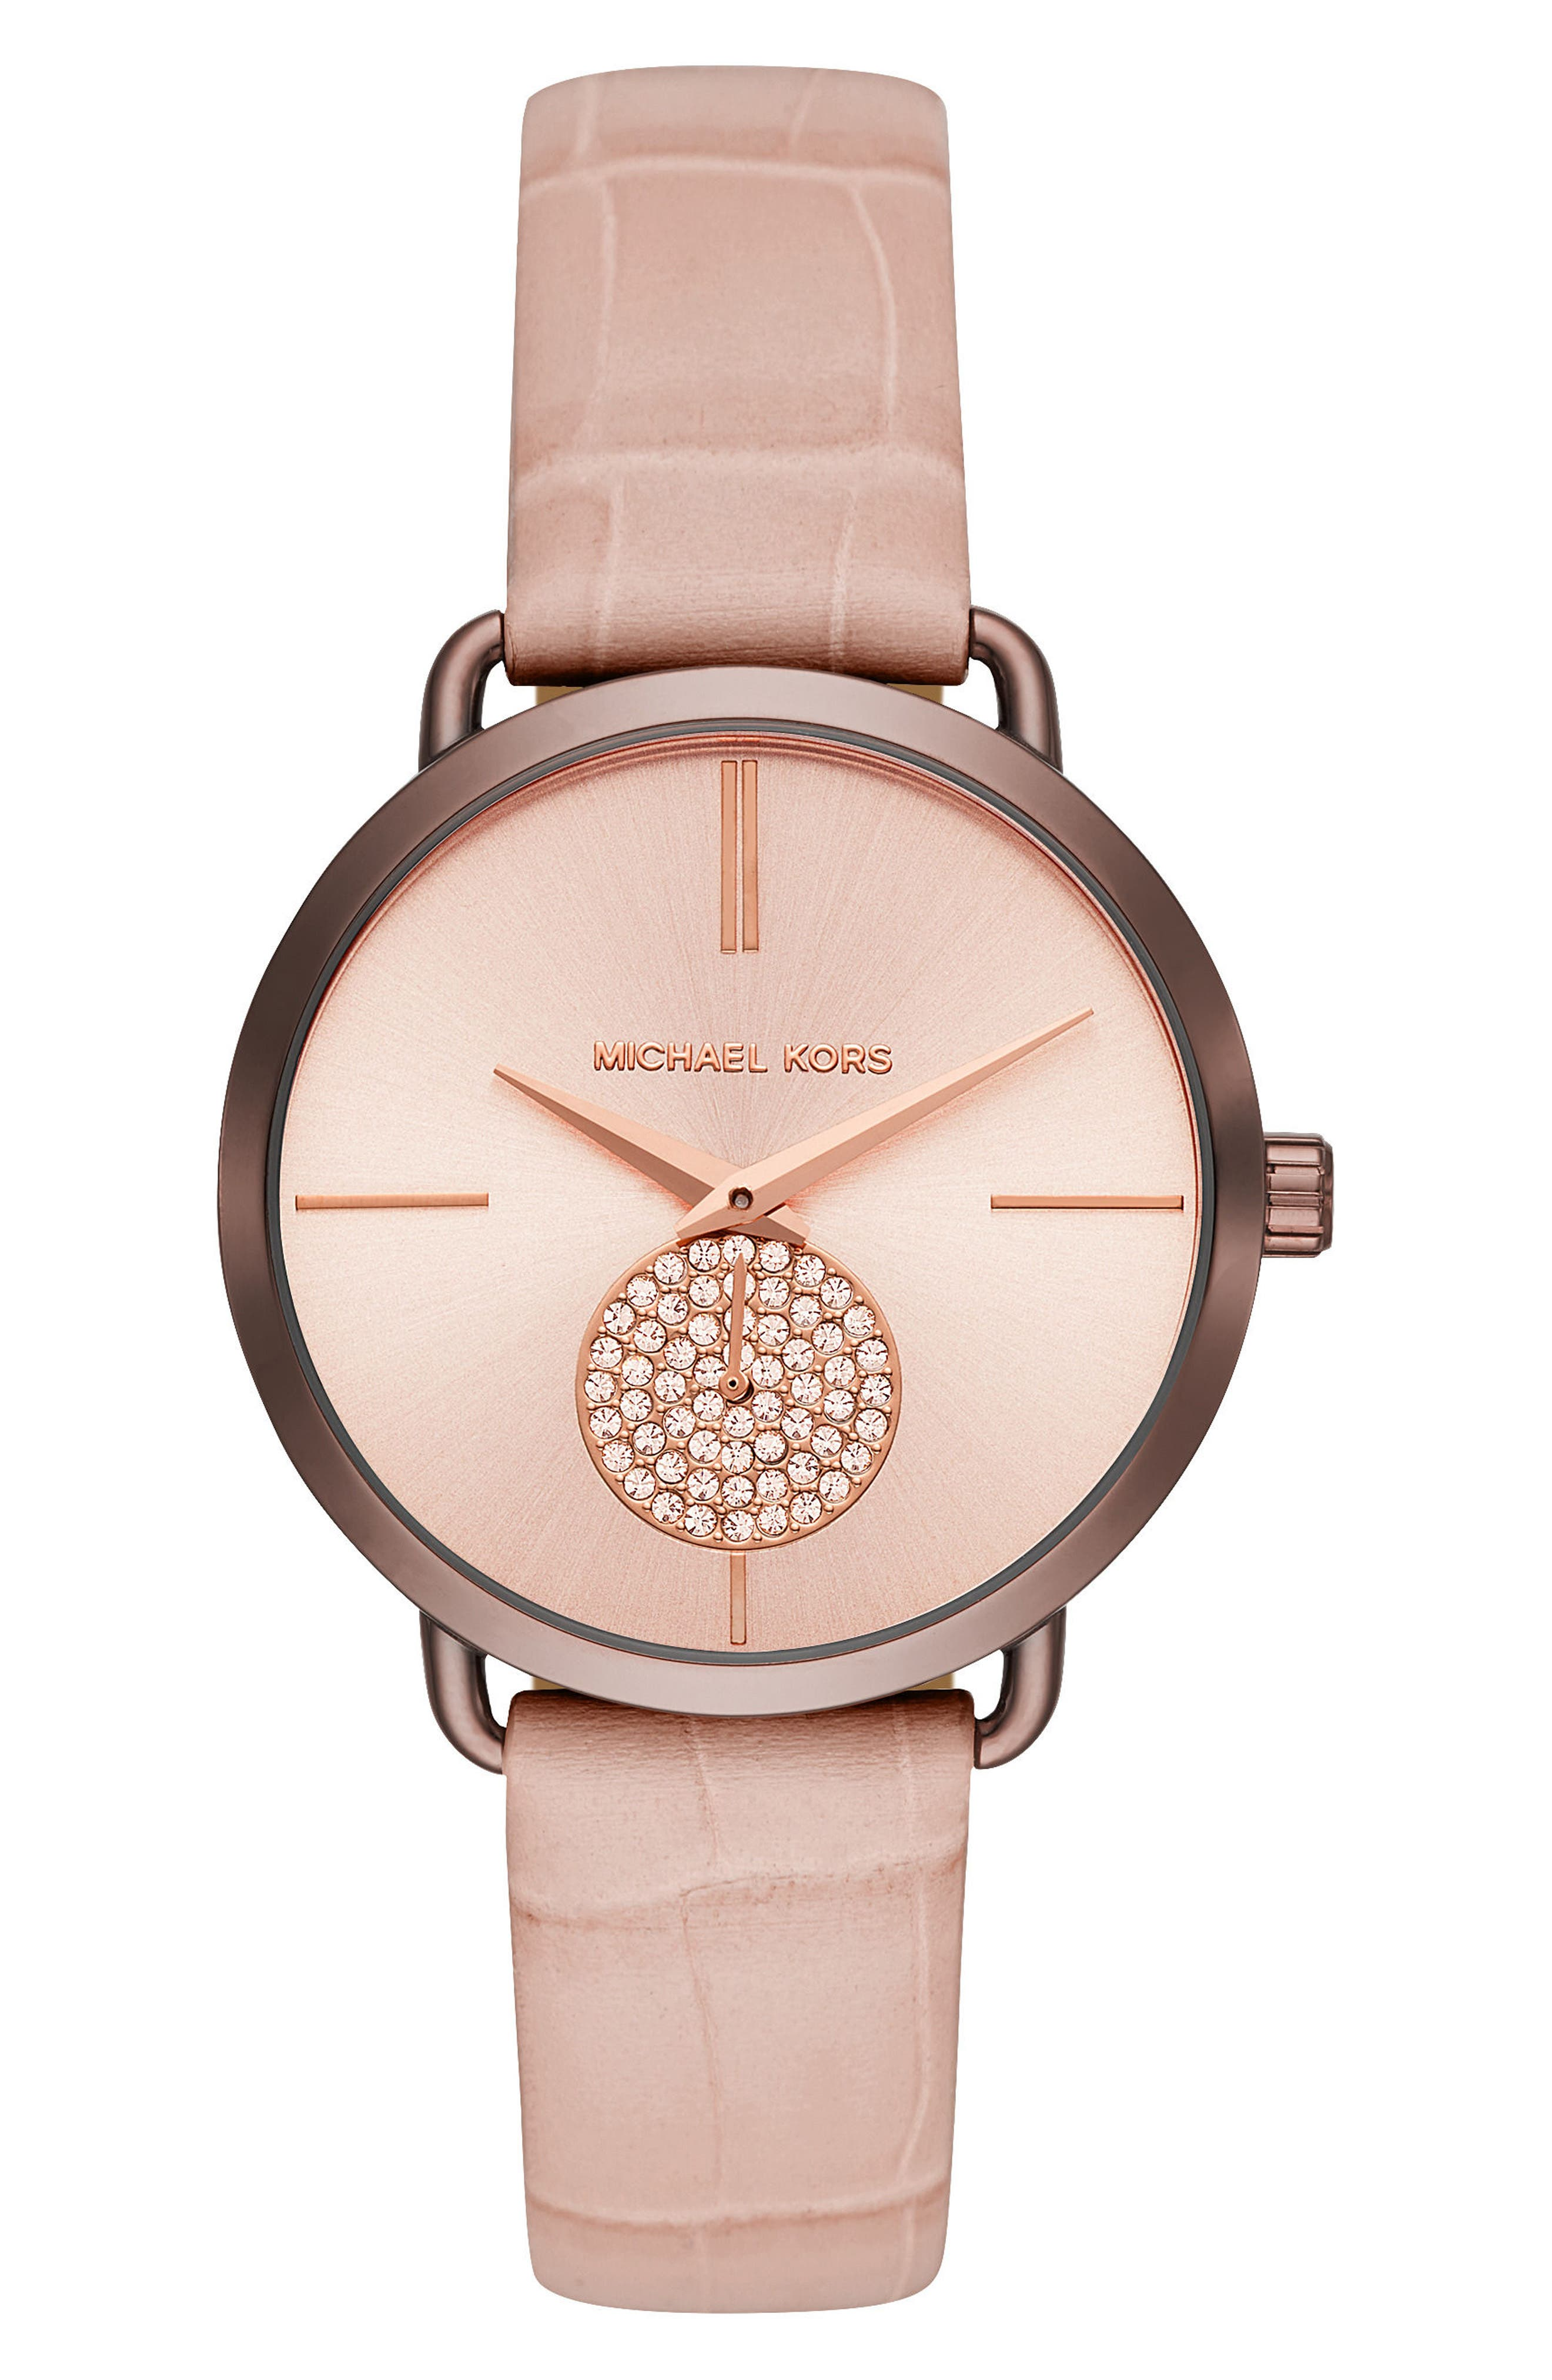 Michael Kors Portia Crystal Leather Strap Watch, 37mm